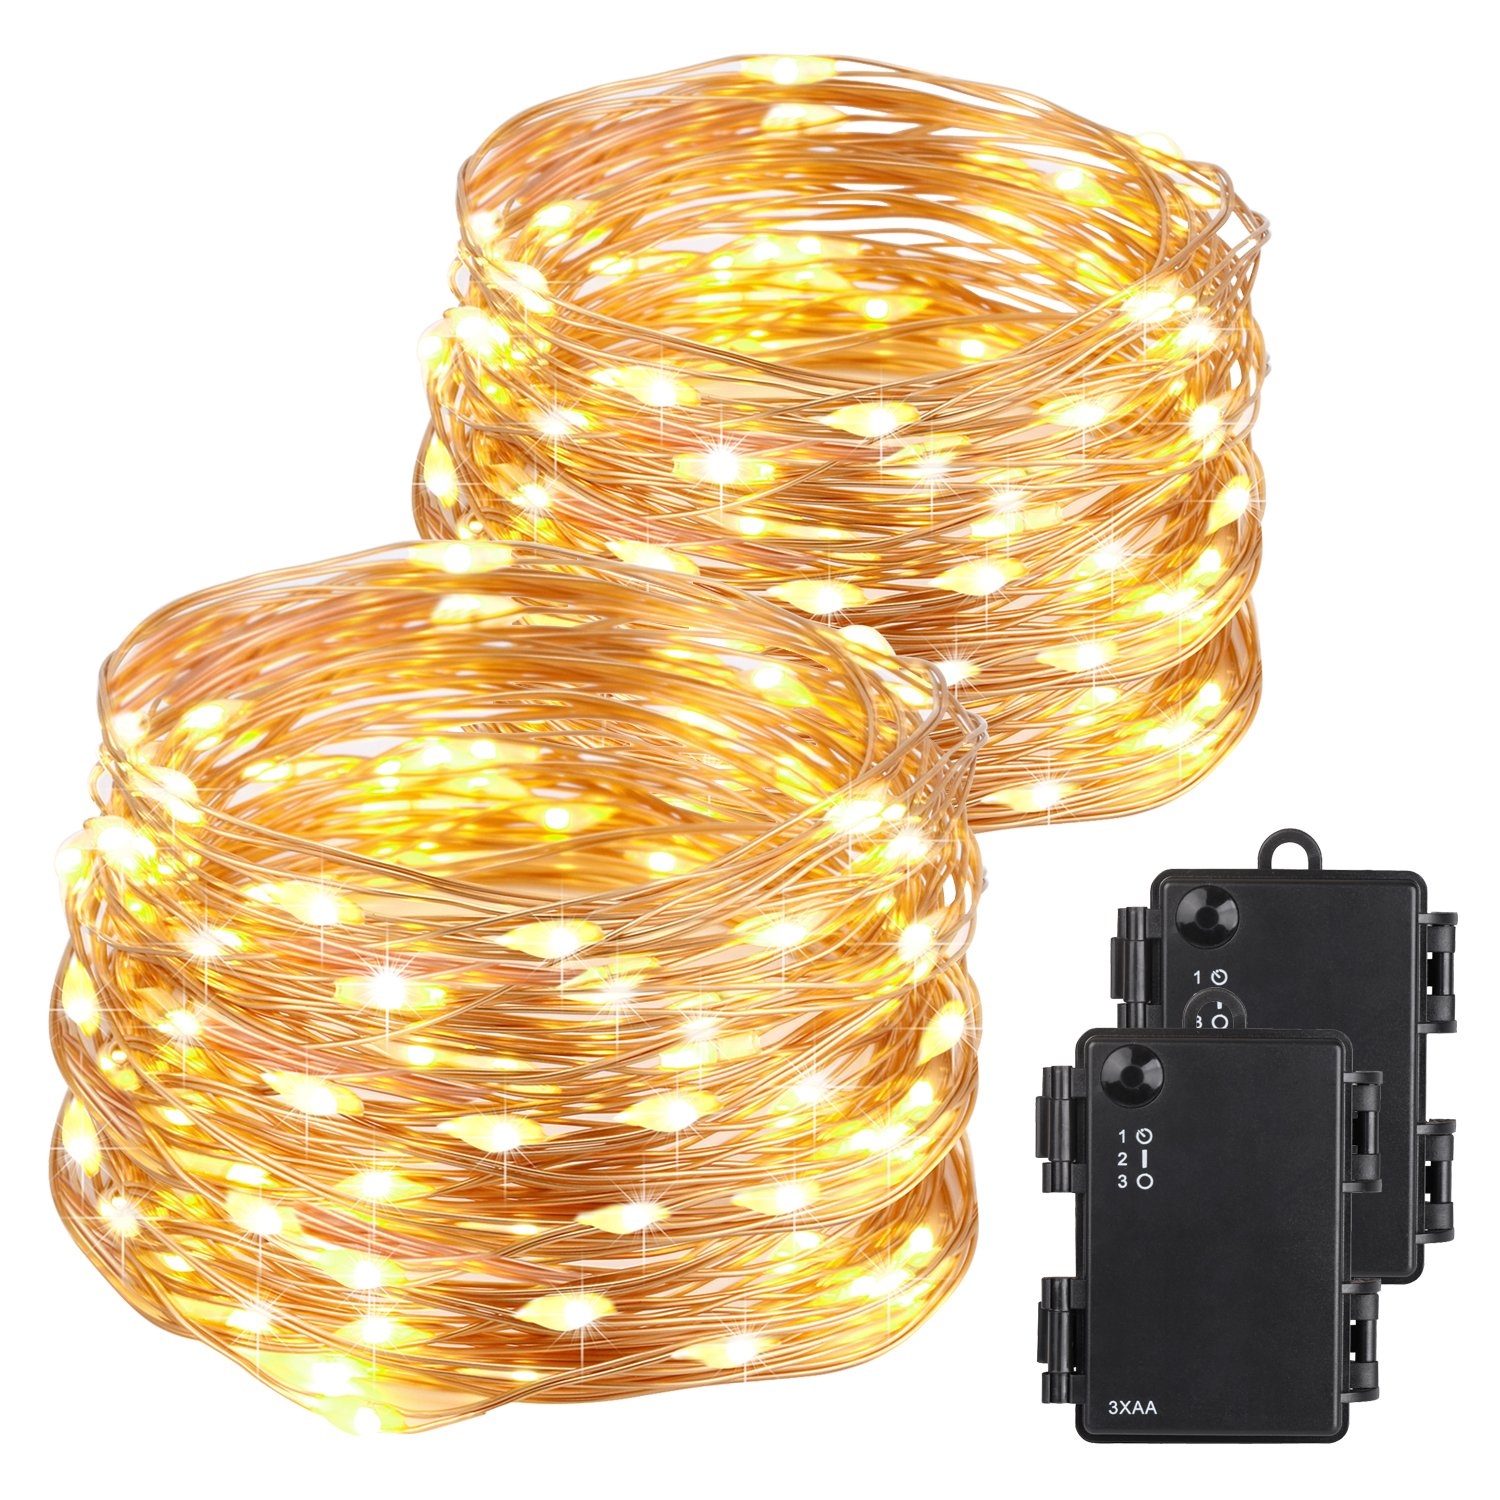 Kohree Christmas String Light Copper Wire Light Waterproof Battery Powered on 40 Feet 120 LEDs Long Ultra Thin String Copper Wire, Decor Rope Light with Timer Perfect for Weddings, Party, Bedroom, Xma